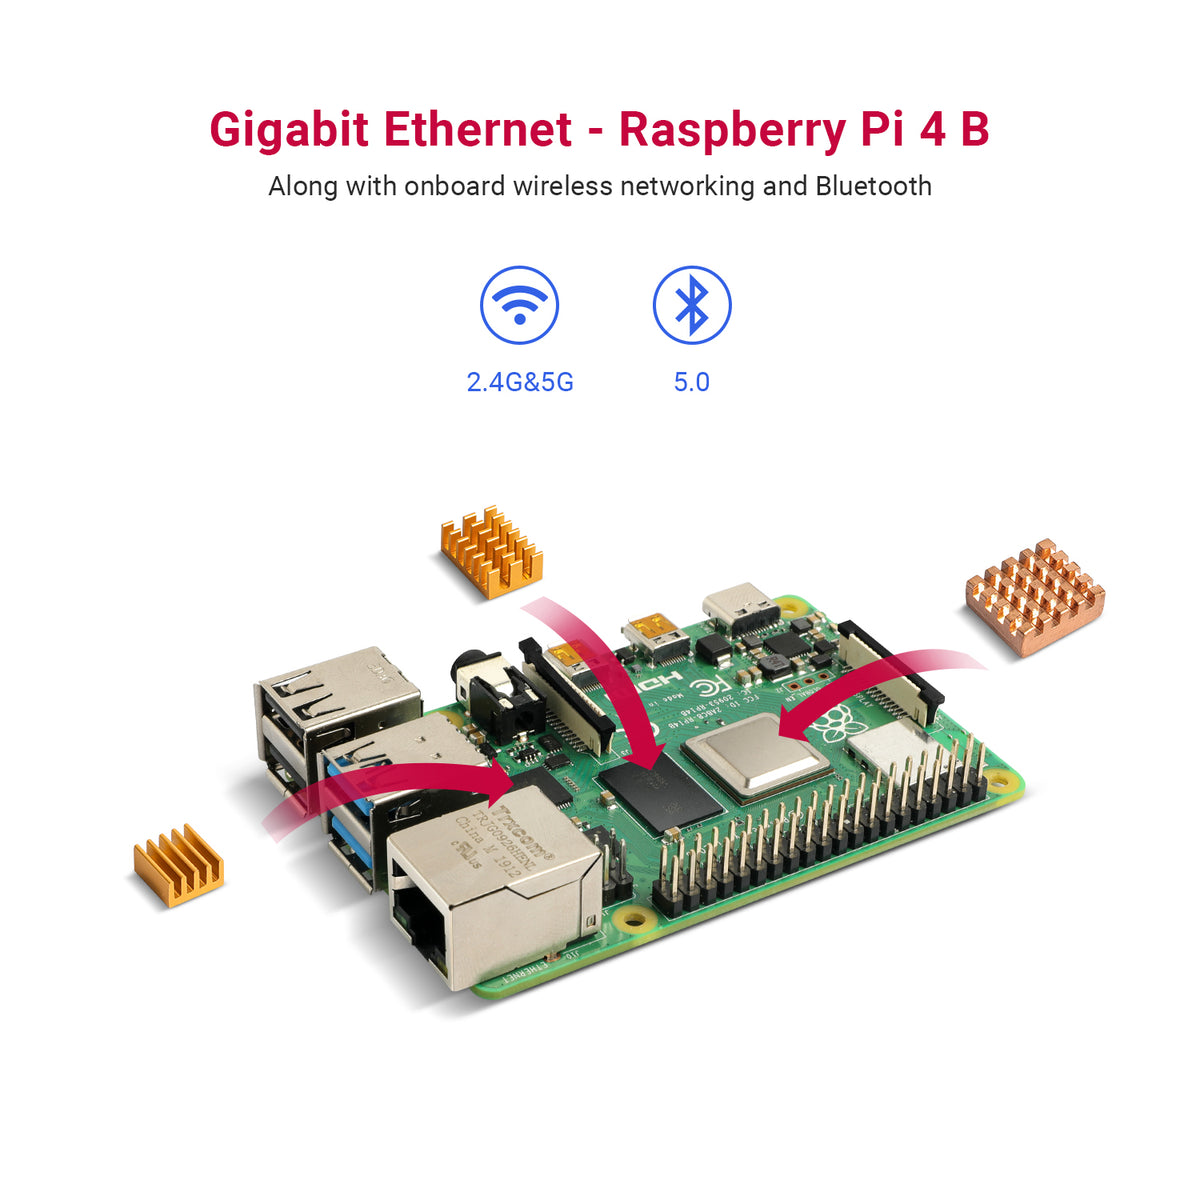 Raspberry Pi 4 B - Gigabit Ethernet